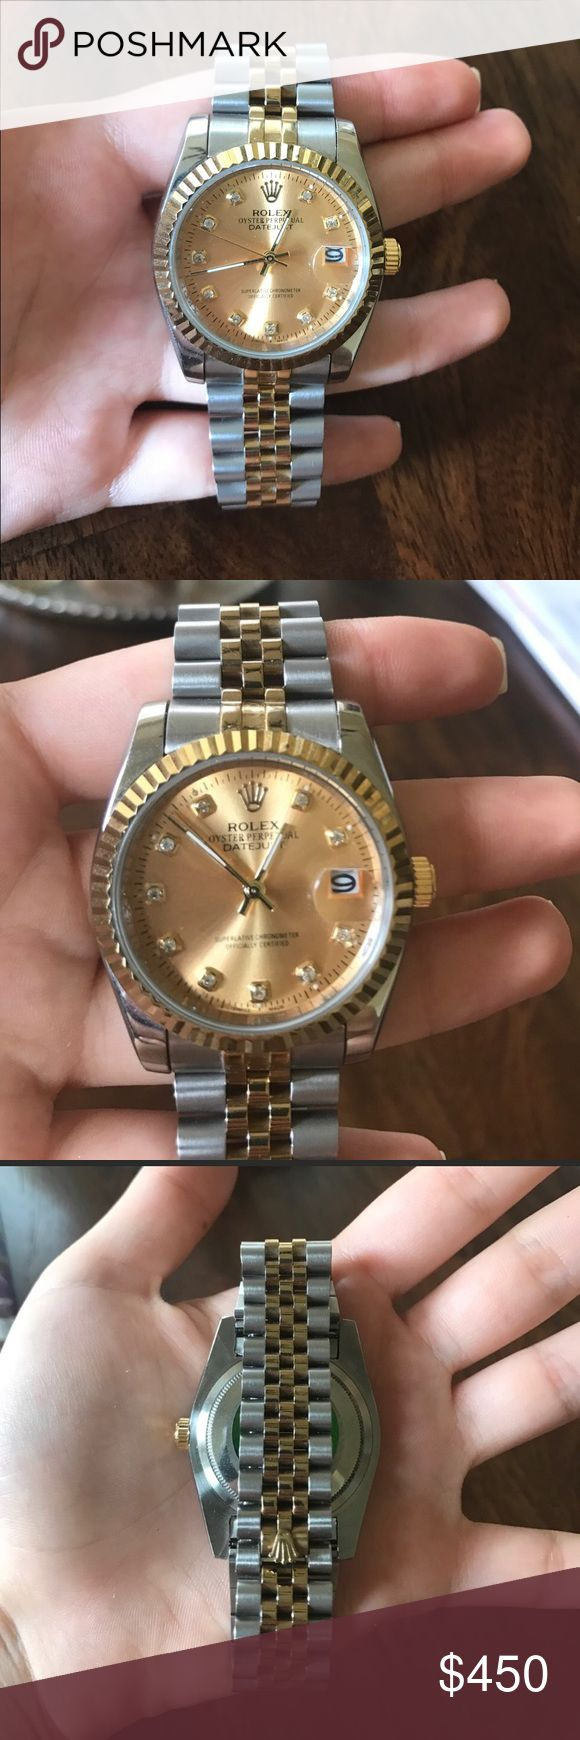 Rolex DateJust Watch💎💎 On sale!! Rolex watch brand new never worn! Price reflects. Let me know if you have any questions! Open to REASONABLE offers Rolex Accessories Watches